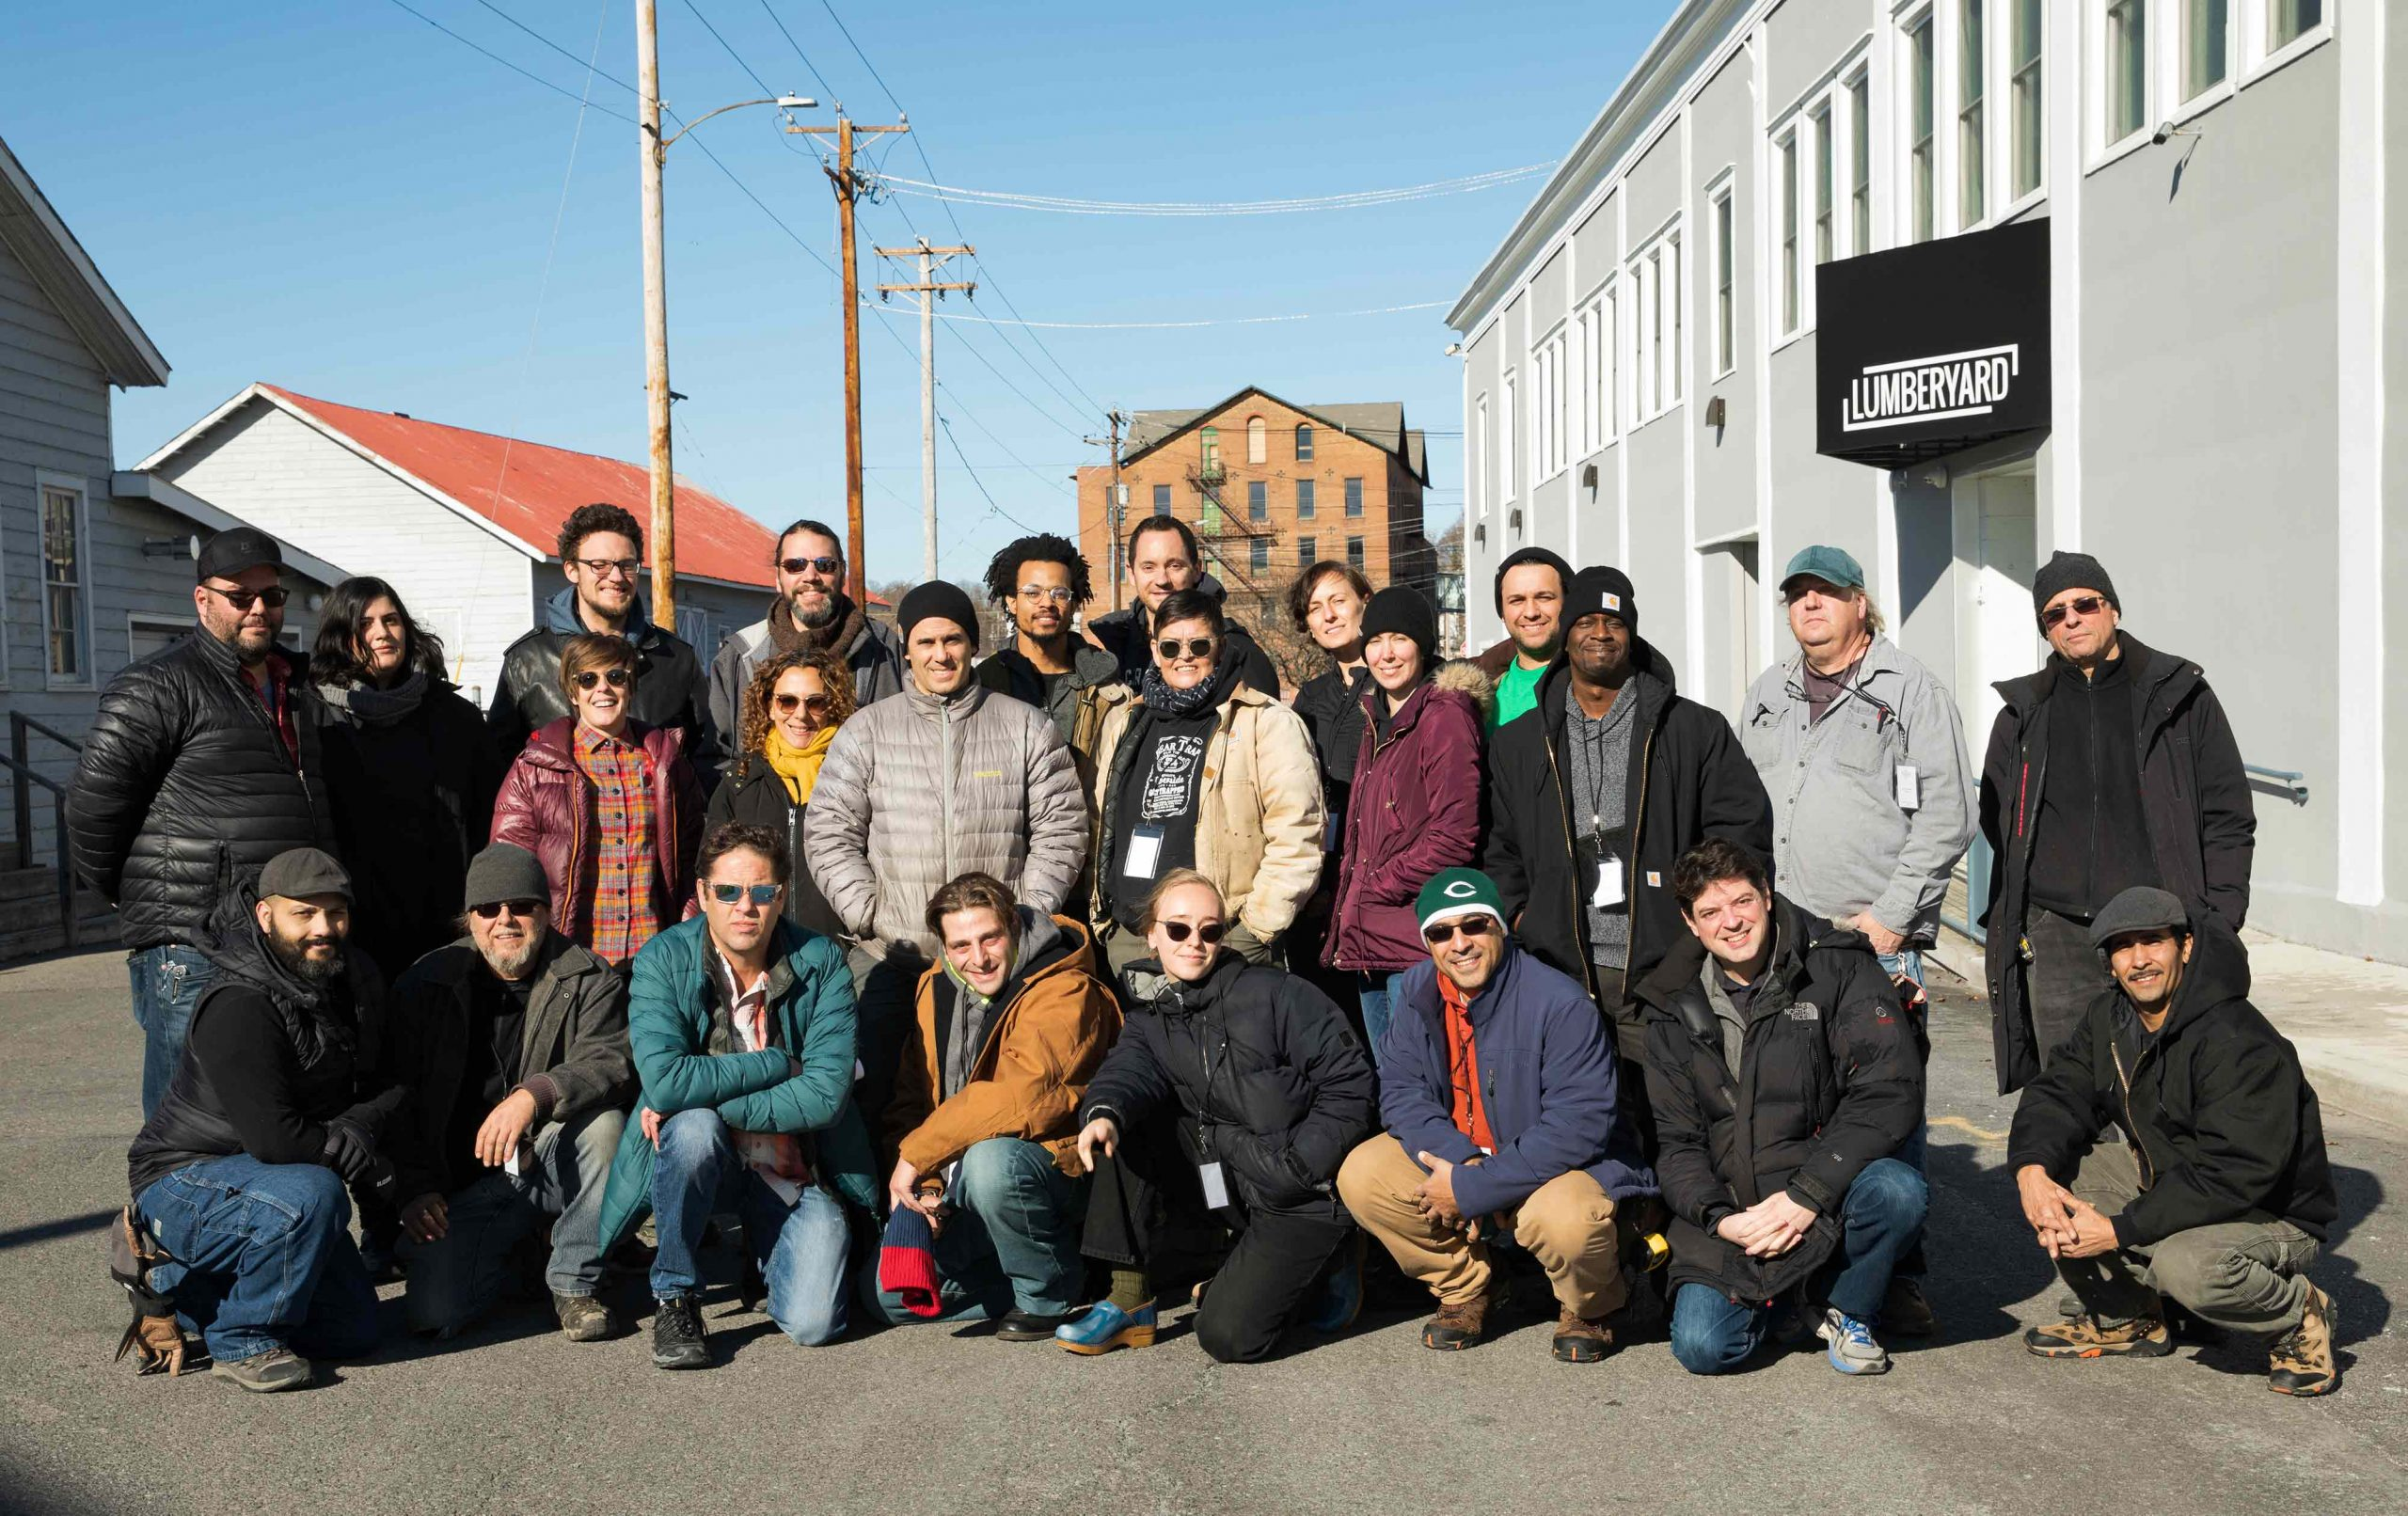 group photo of crew members outside in the winter weather